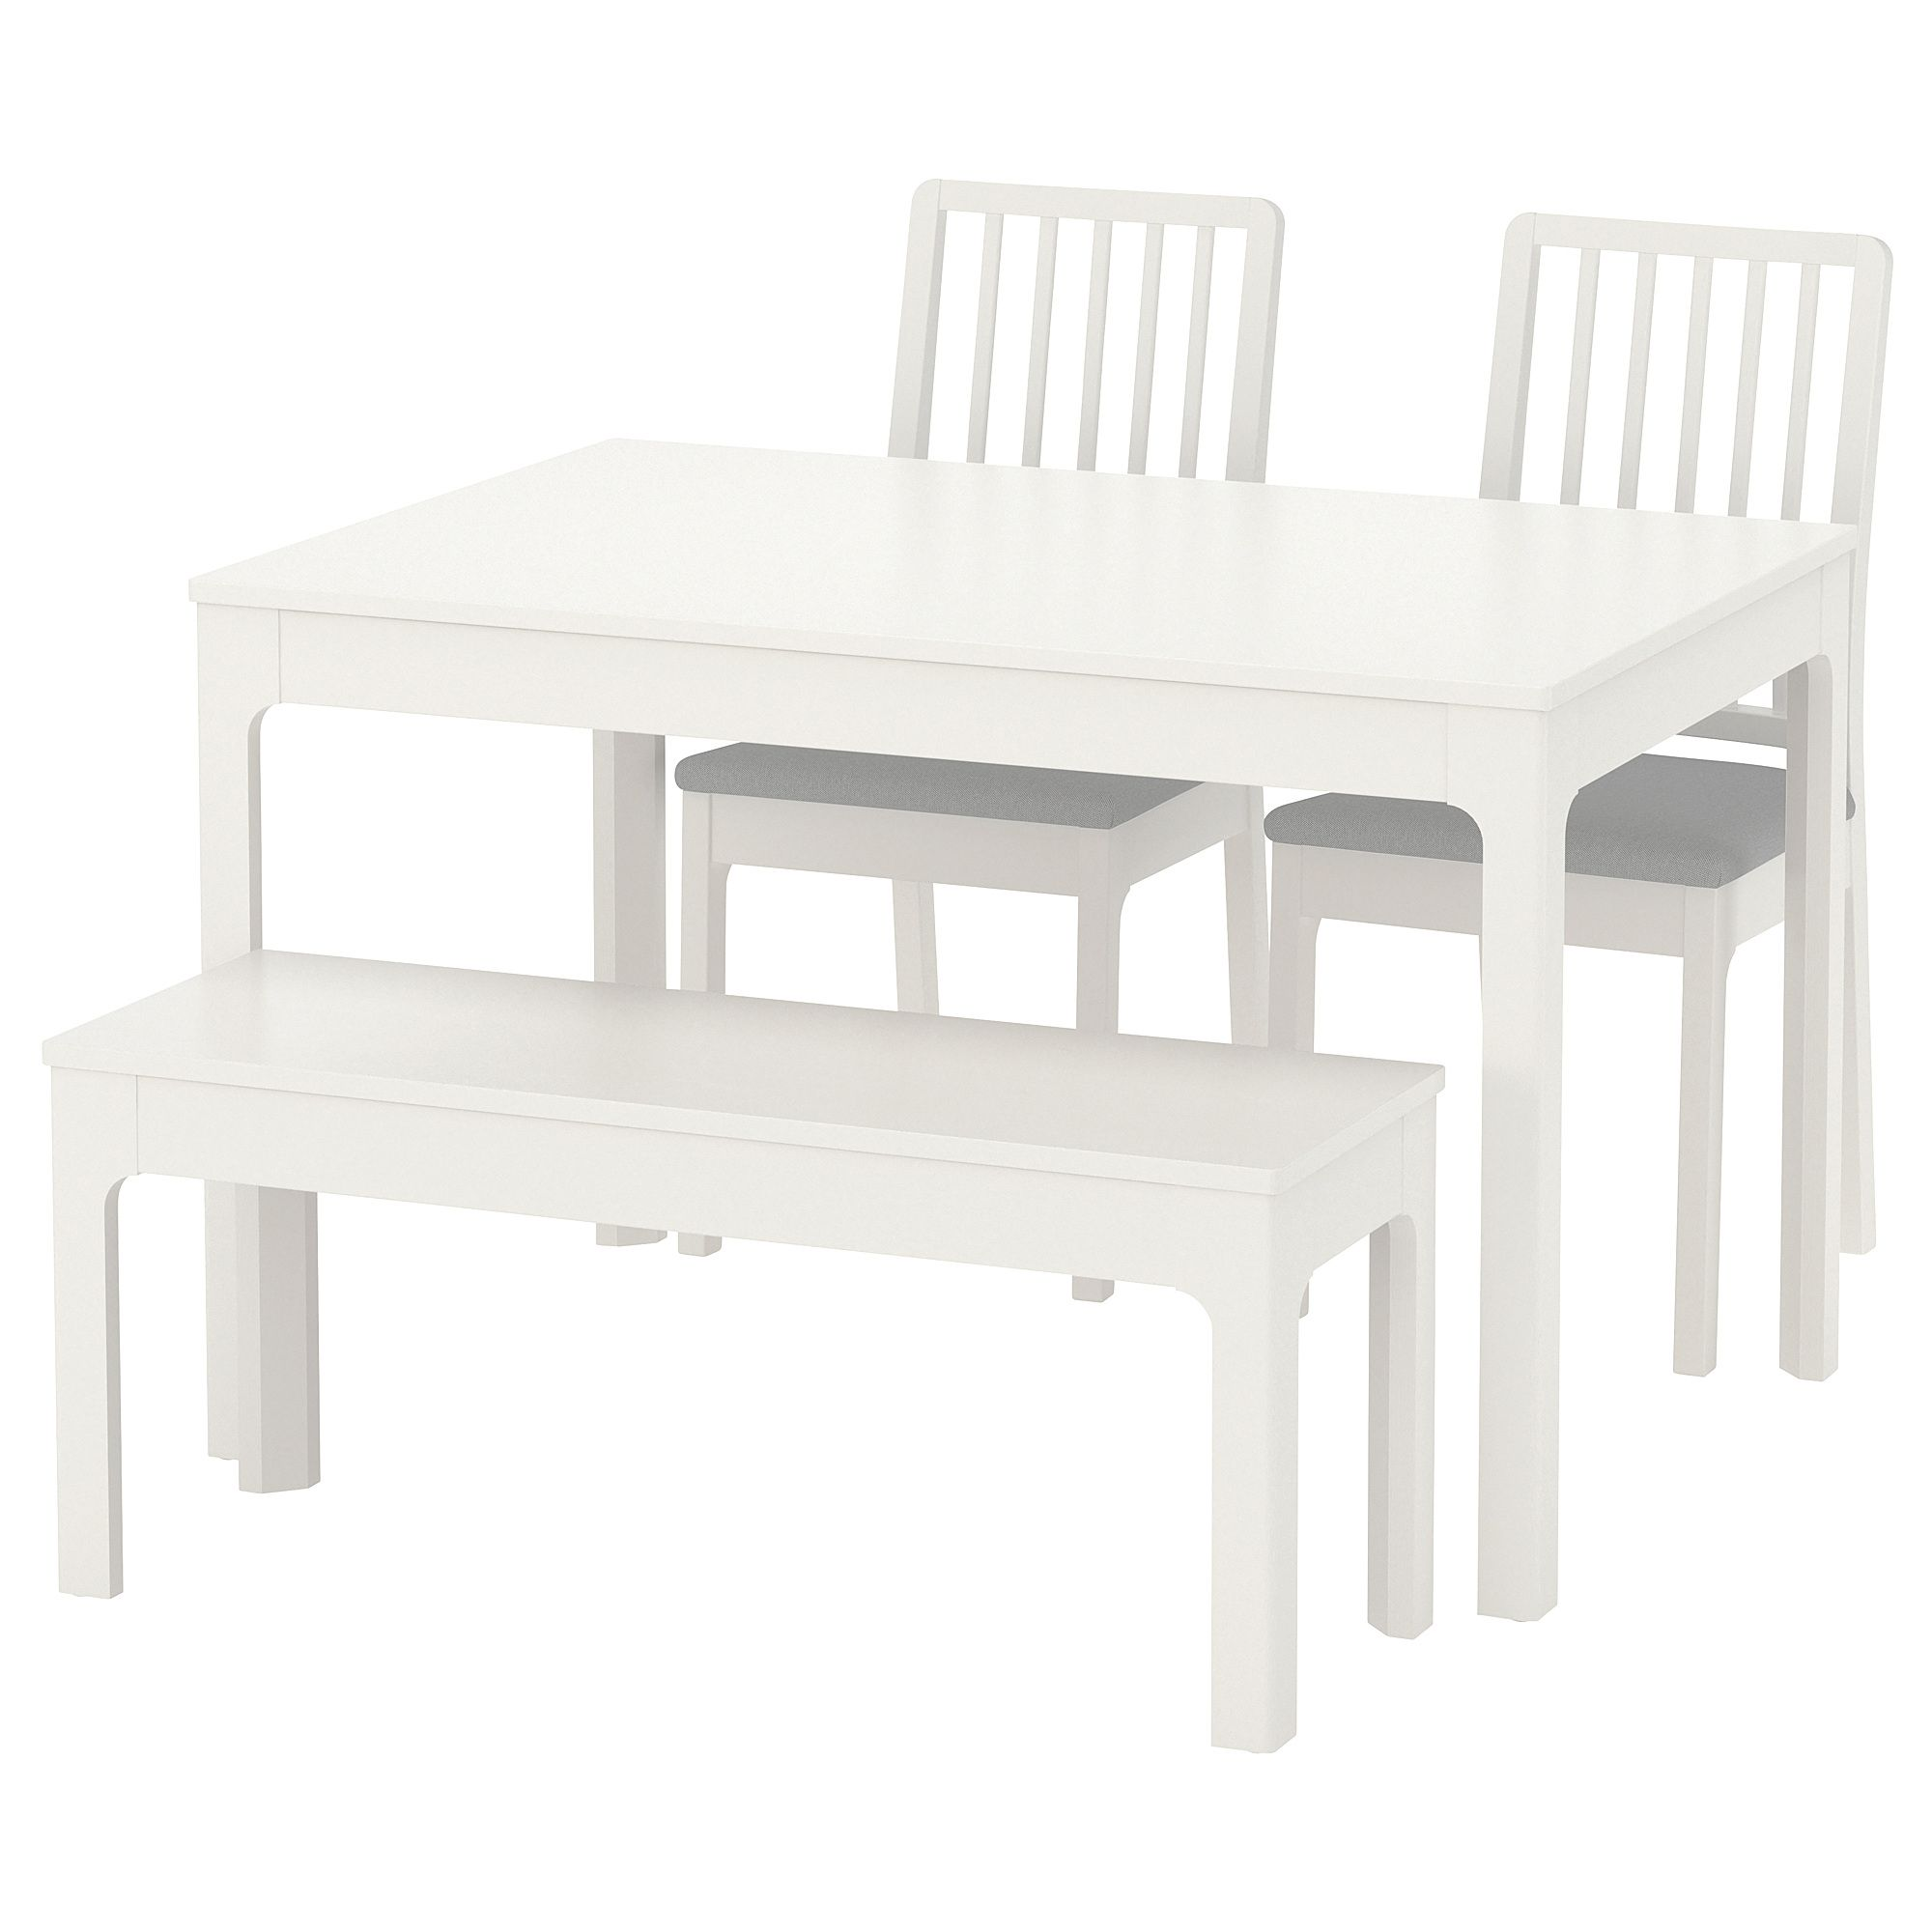 Miraculous Ekedalen Ekedalen Table With 2 Chairs And Bench White Unemploymentrelief Wooden Chair Designs For Living Room Unemploymentrelieforg